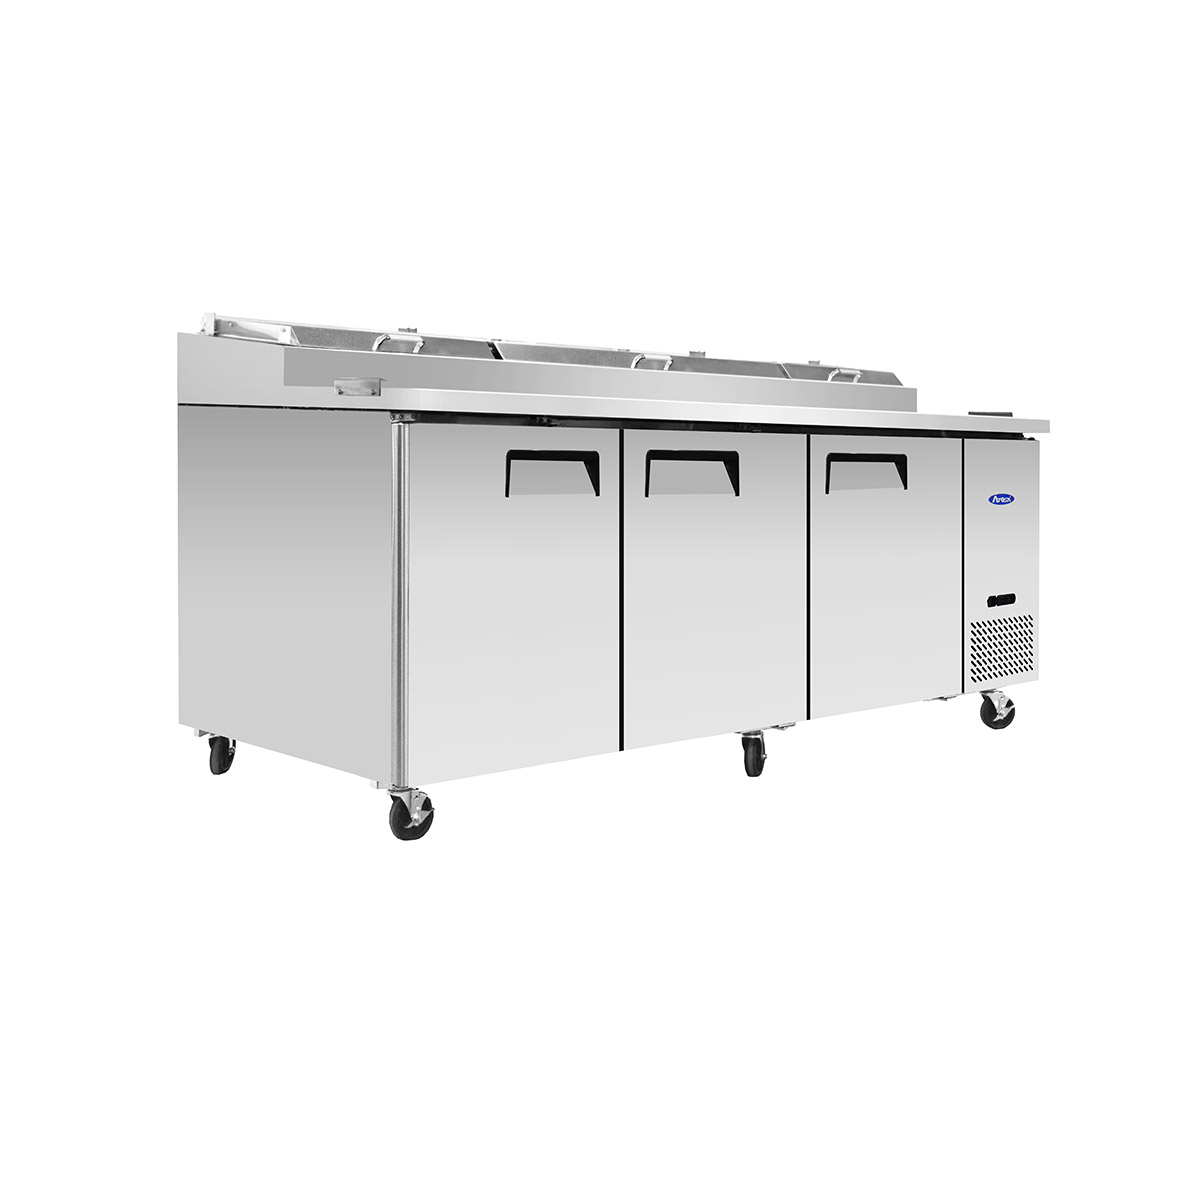 Atosa MPF8203GR 3 Door Refrigeration Preparation Table Including 12x 1/3 GN Pan Option